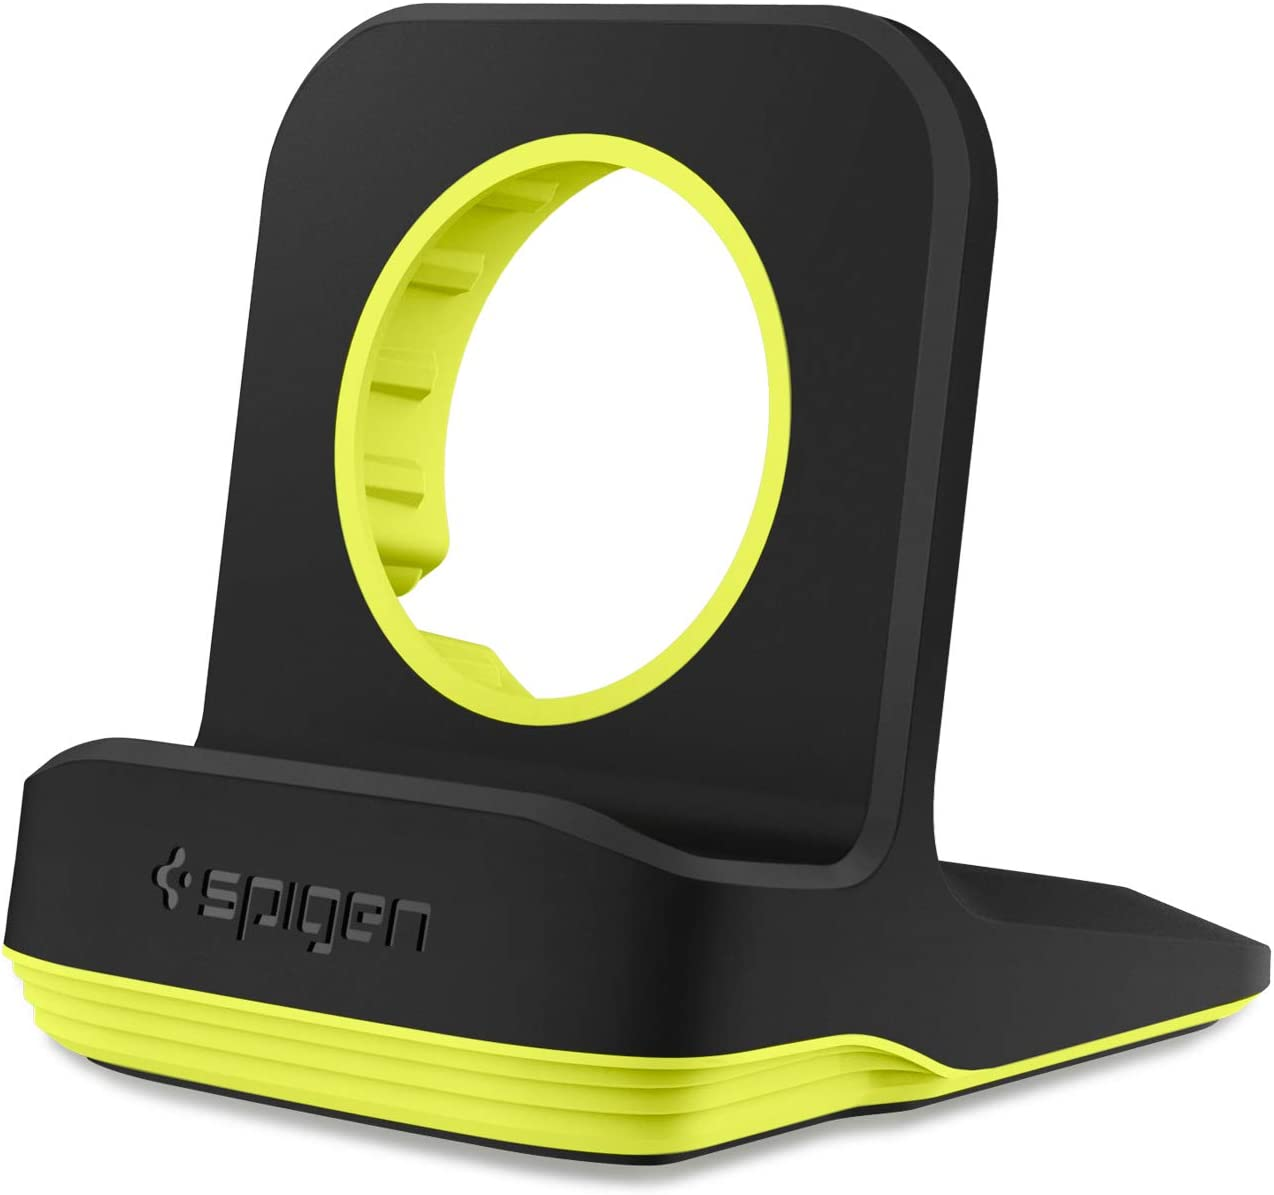 Spigen S350 Designed for Apple Watch Stand for 44mm/40mm Series 6/SE/5/4 and 42mm/38mm Series 3/2/1 - Volt Black